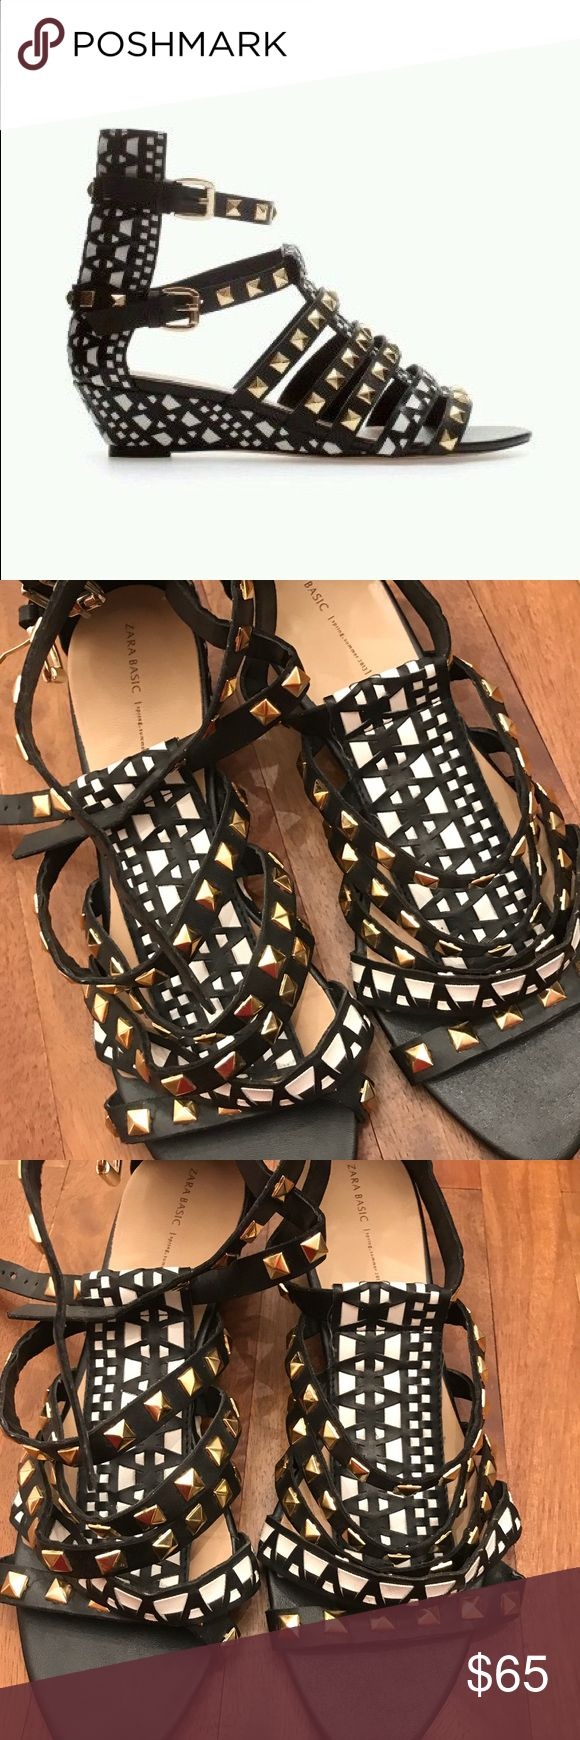 Zara Aztec Multi Colour Studded Wedge Sandals popular Zara studded wedge sandals from few years back size 8 wore maybe 2/3 times EUC bottom of heel looks dirty because I used them once in an outdoor party but no rips or stains size 8 fits very true to size. Zara Shoes Sandals